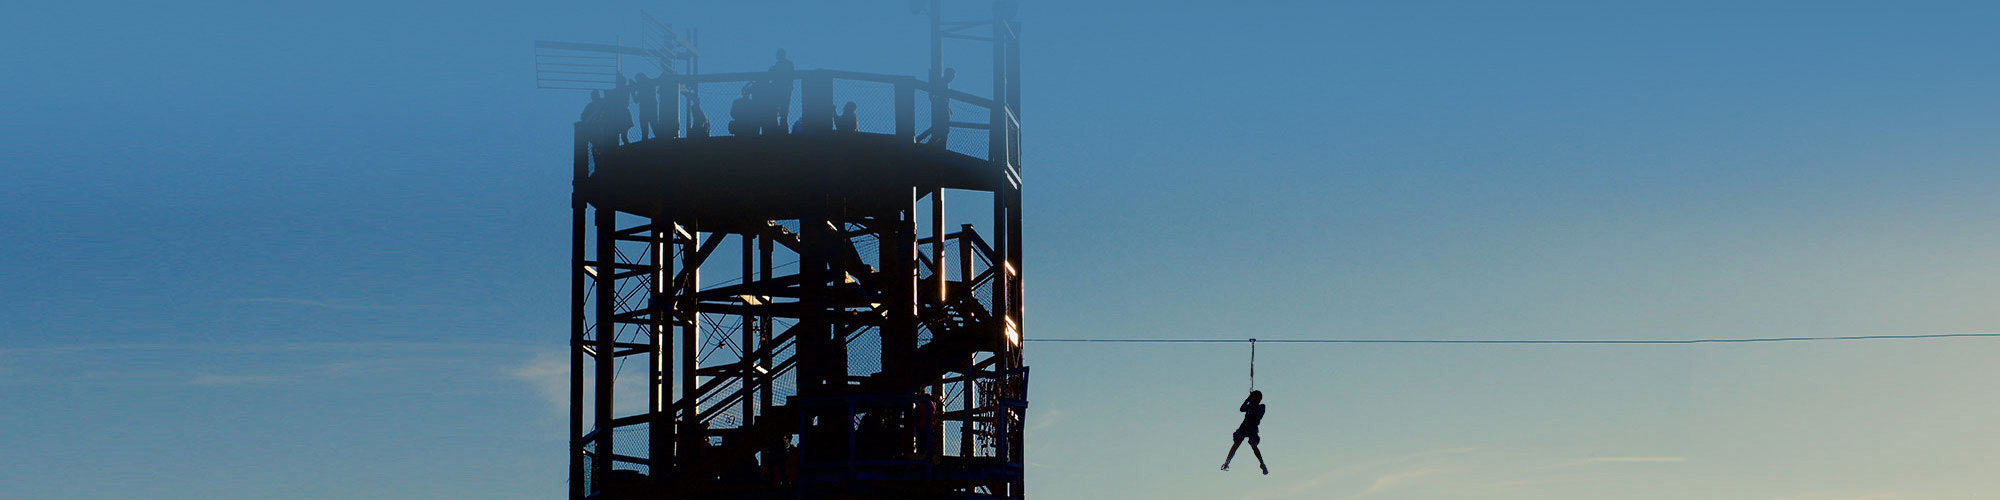 Soar down our 100 foot zipline from out towering observation tower in Lake County, Illinois